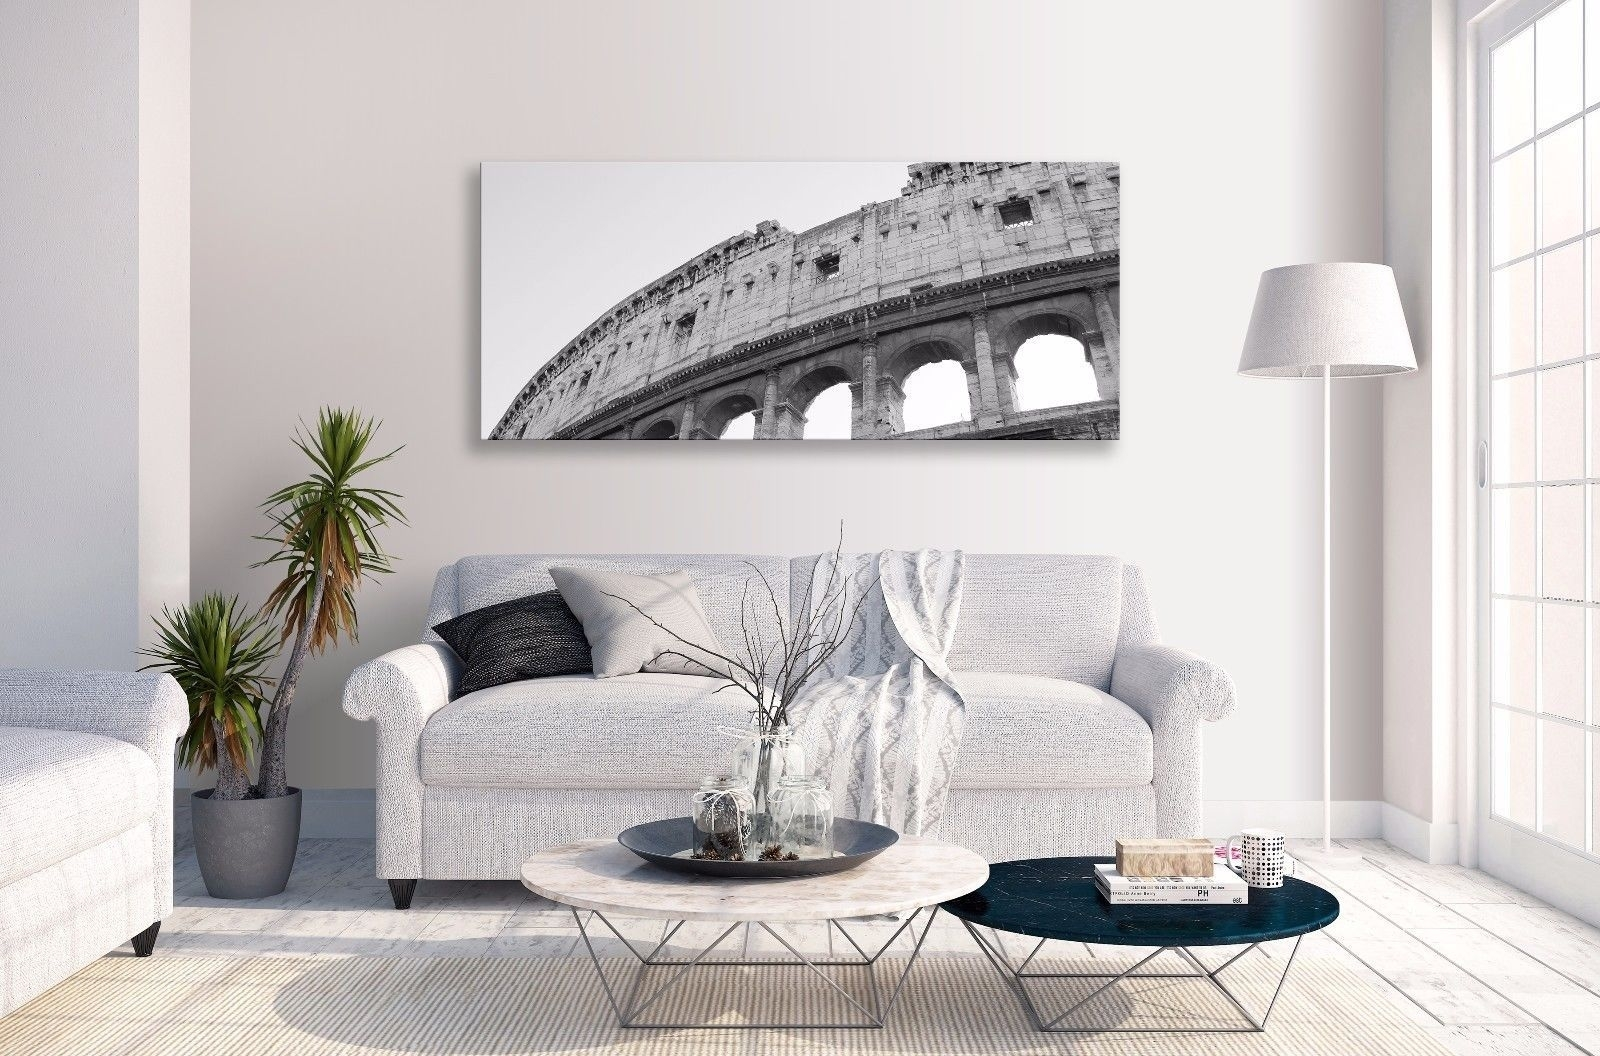 Colosseum Rome Abstract Architecture Grey Panorama Canvas Wall Art In 2018 Canvas Wall Art Of Rome (View 15 of 15)